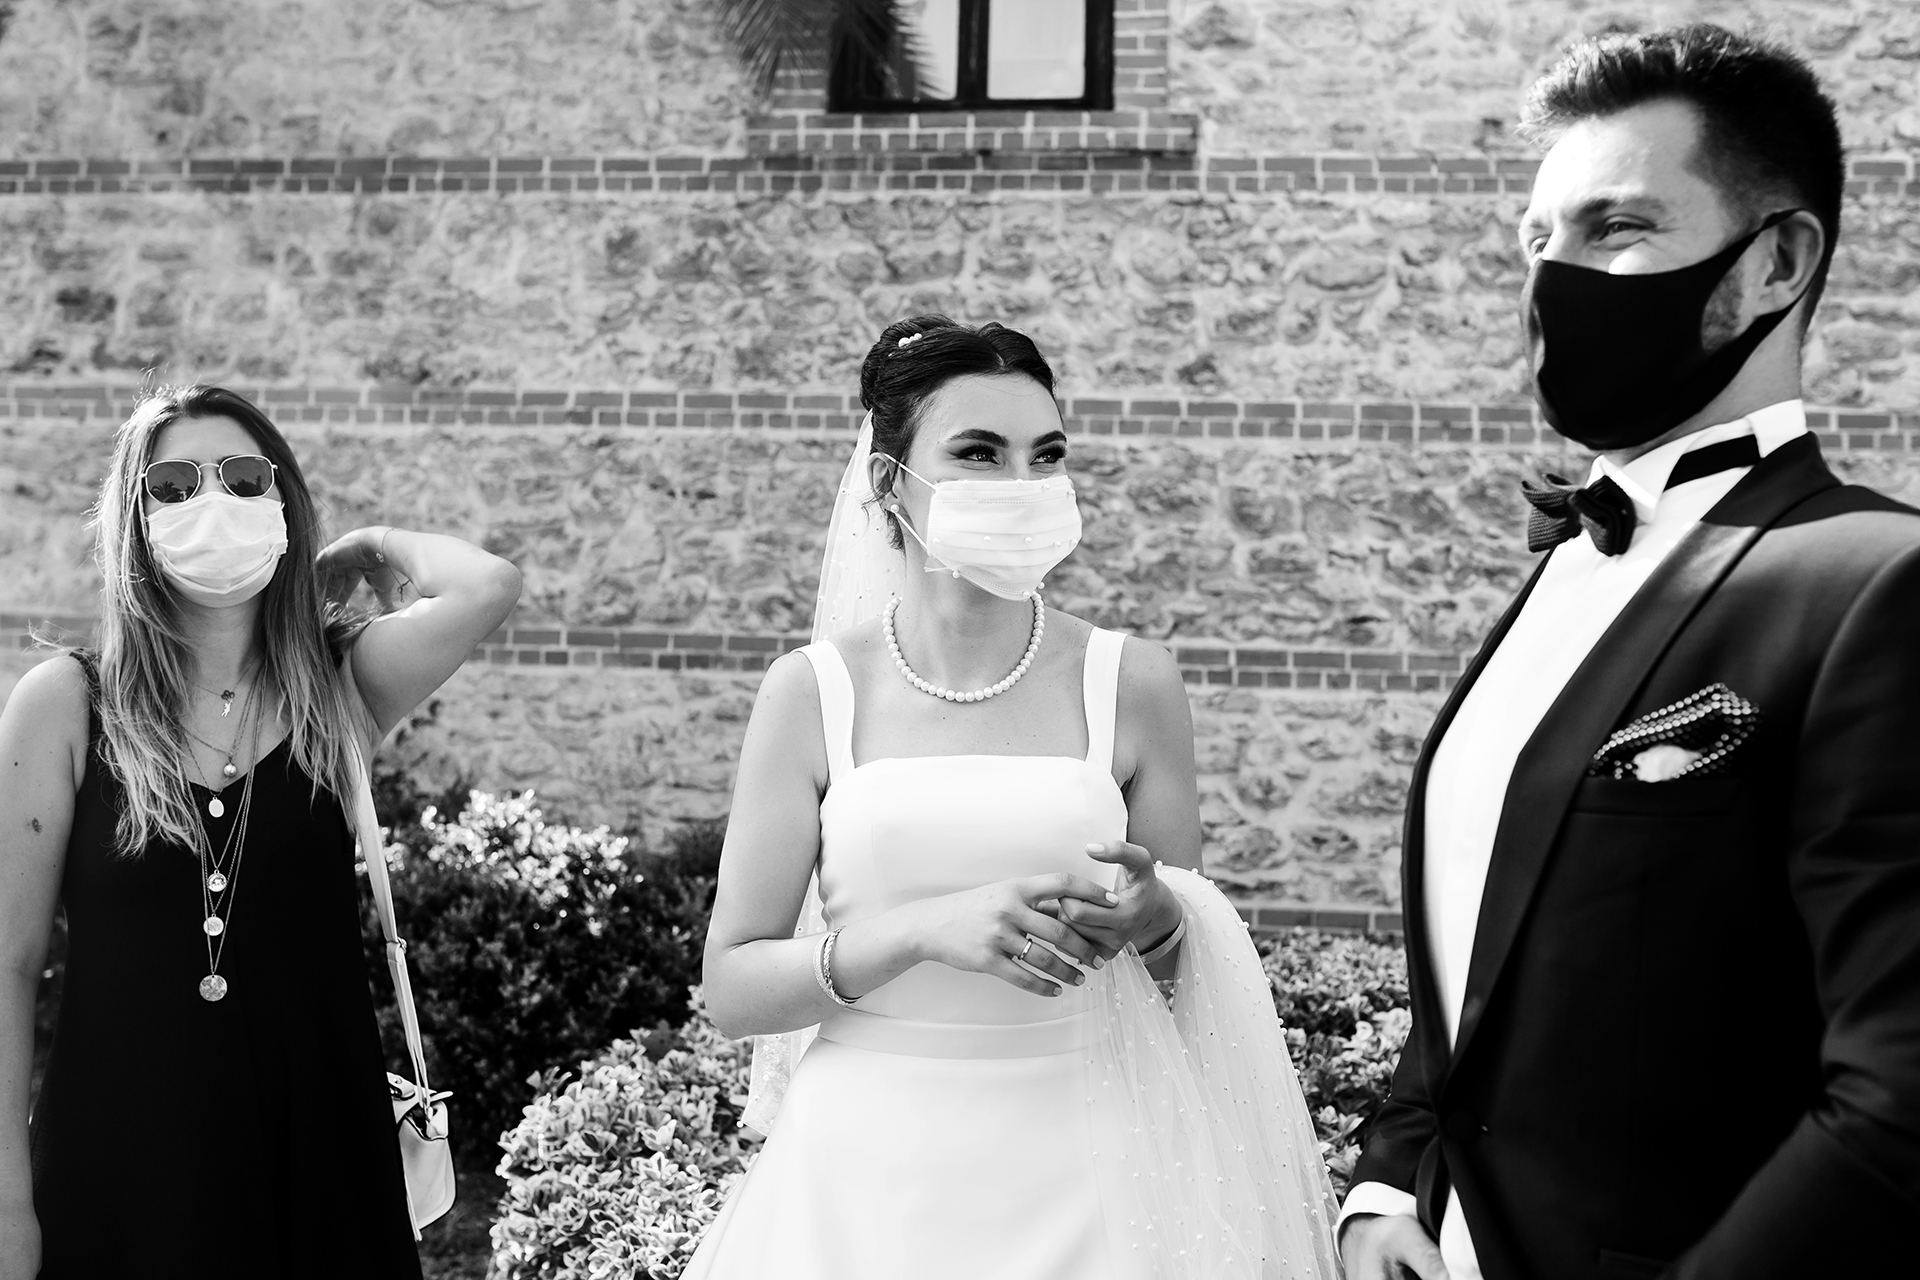 Registration Photo - Civil Marriage in Turkey Wedding Photo - Municipality Belediye | the bride and groom were covered behind masks due to the pandemic